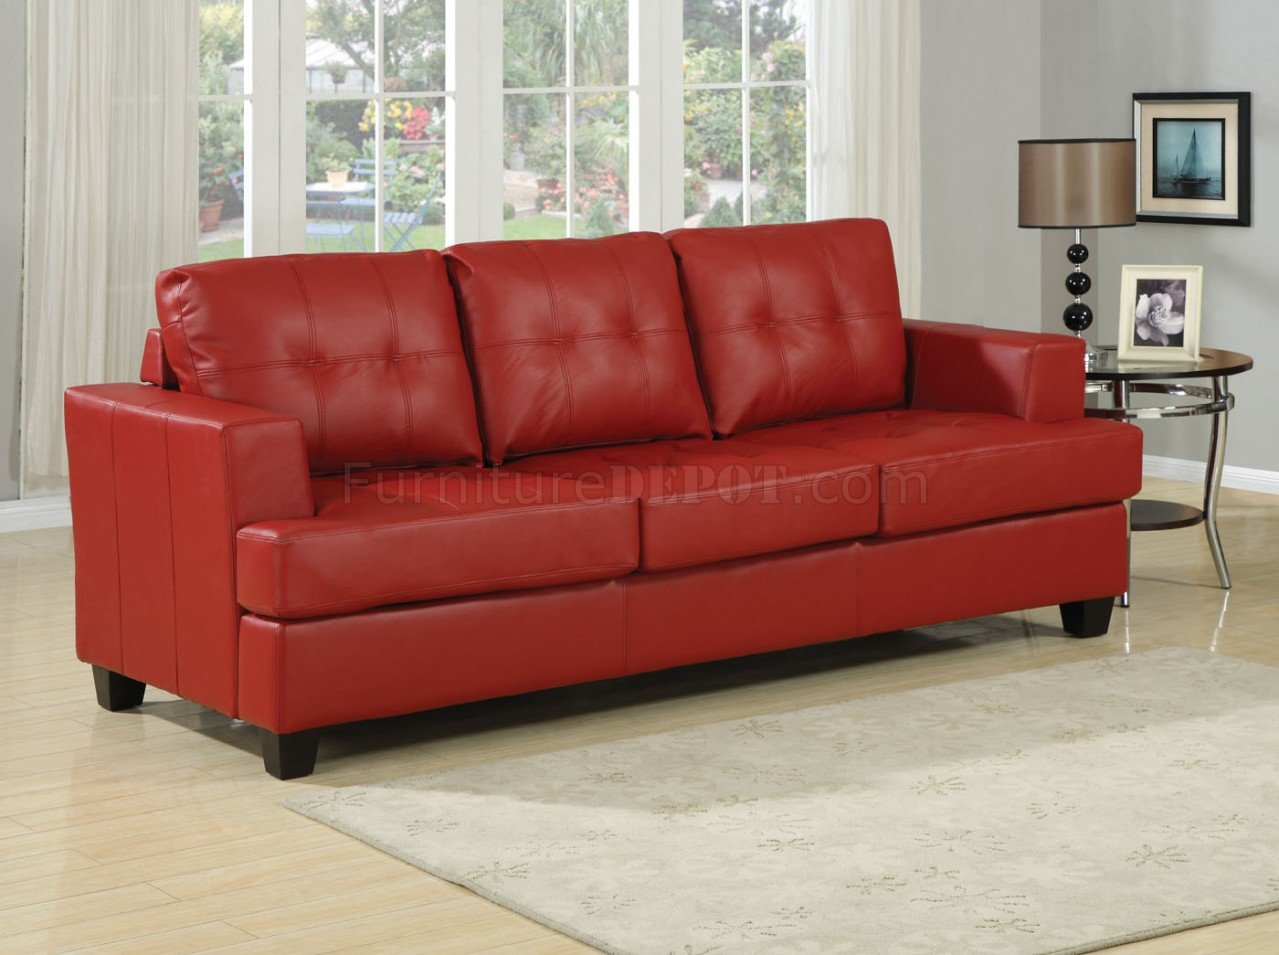 Red Bonded Leather Modern Sofa W Queen Size Sleeper